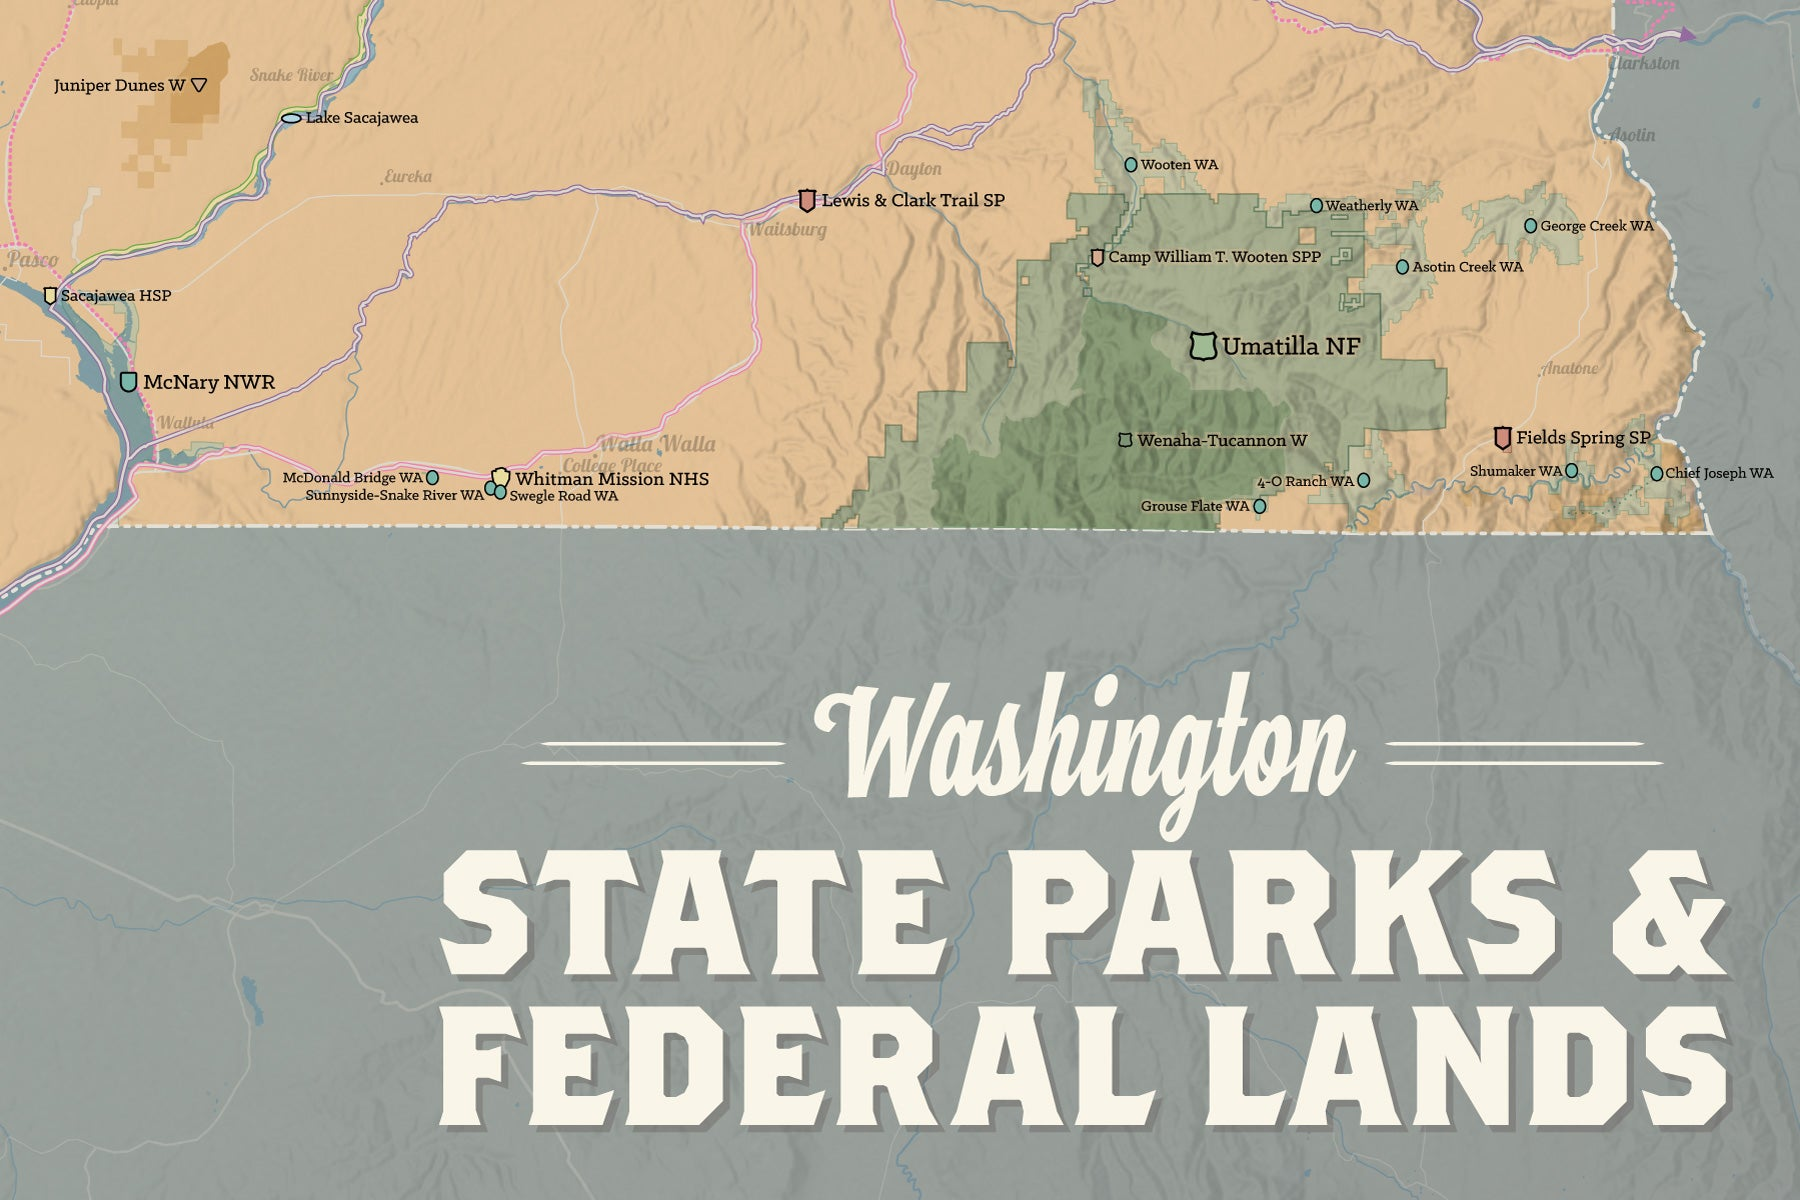 Washington state parks federal lands map 24x36 poster best maps ever washington state parks federal lands map poster camel slate blue gumiabroncs Choice Image